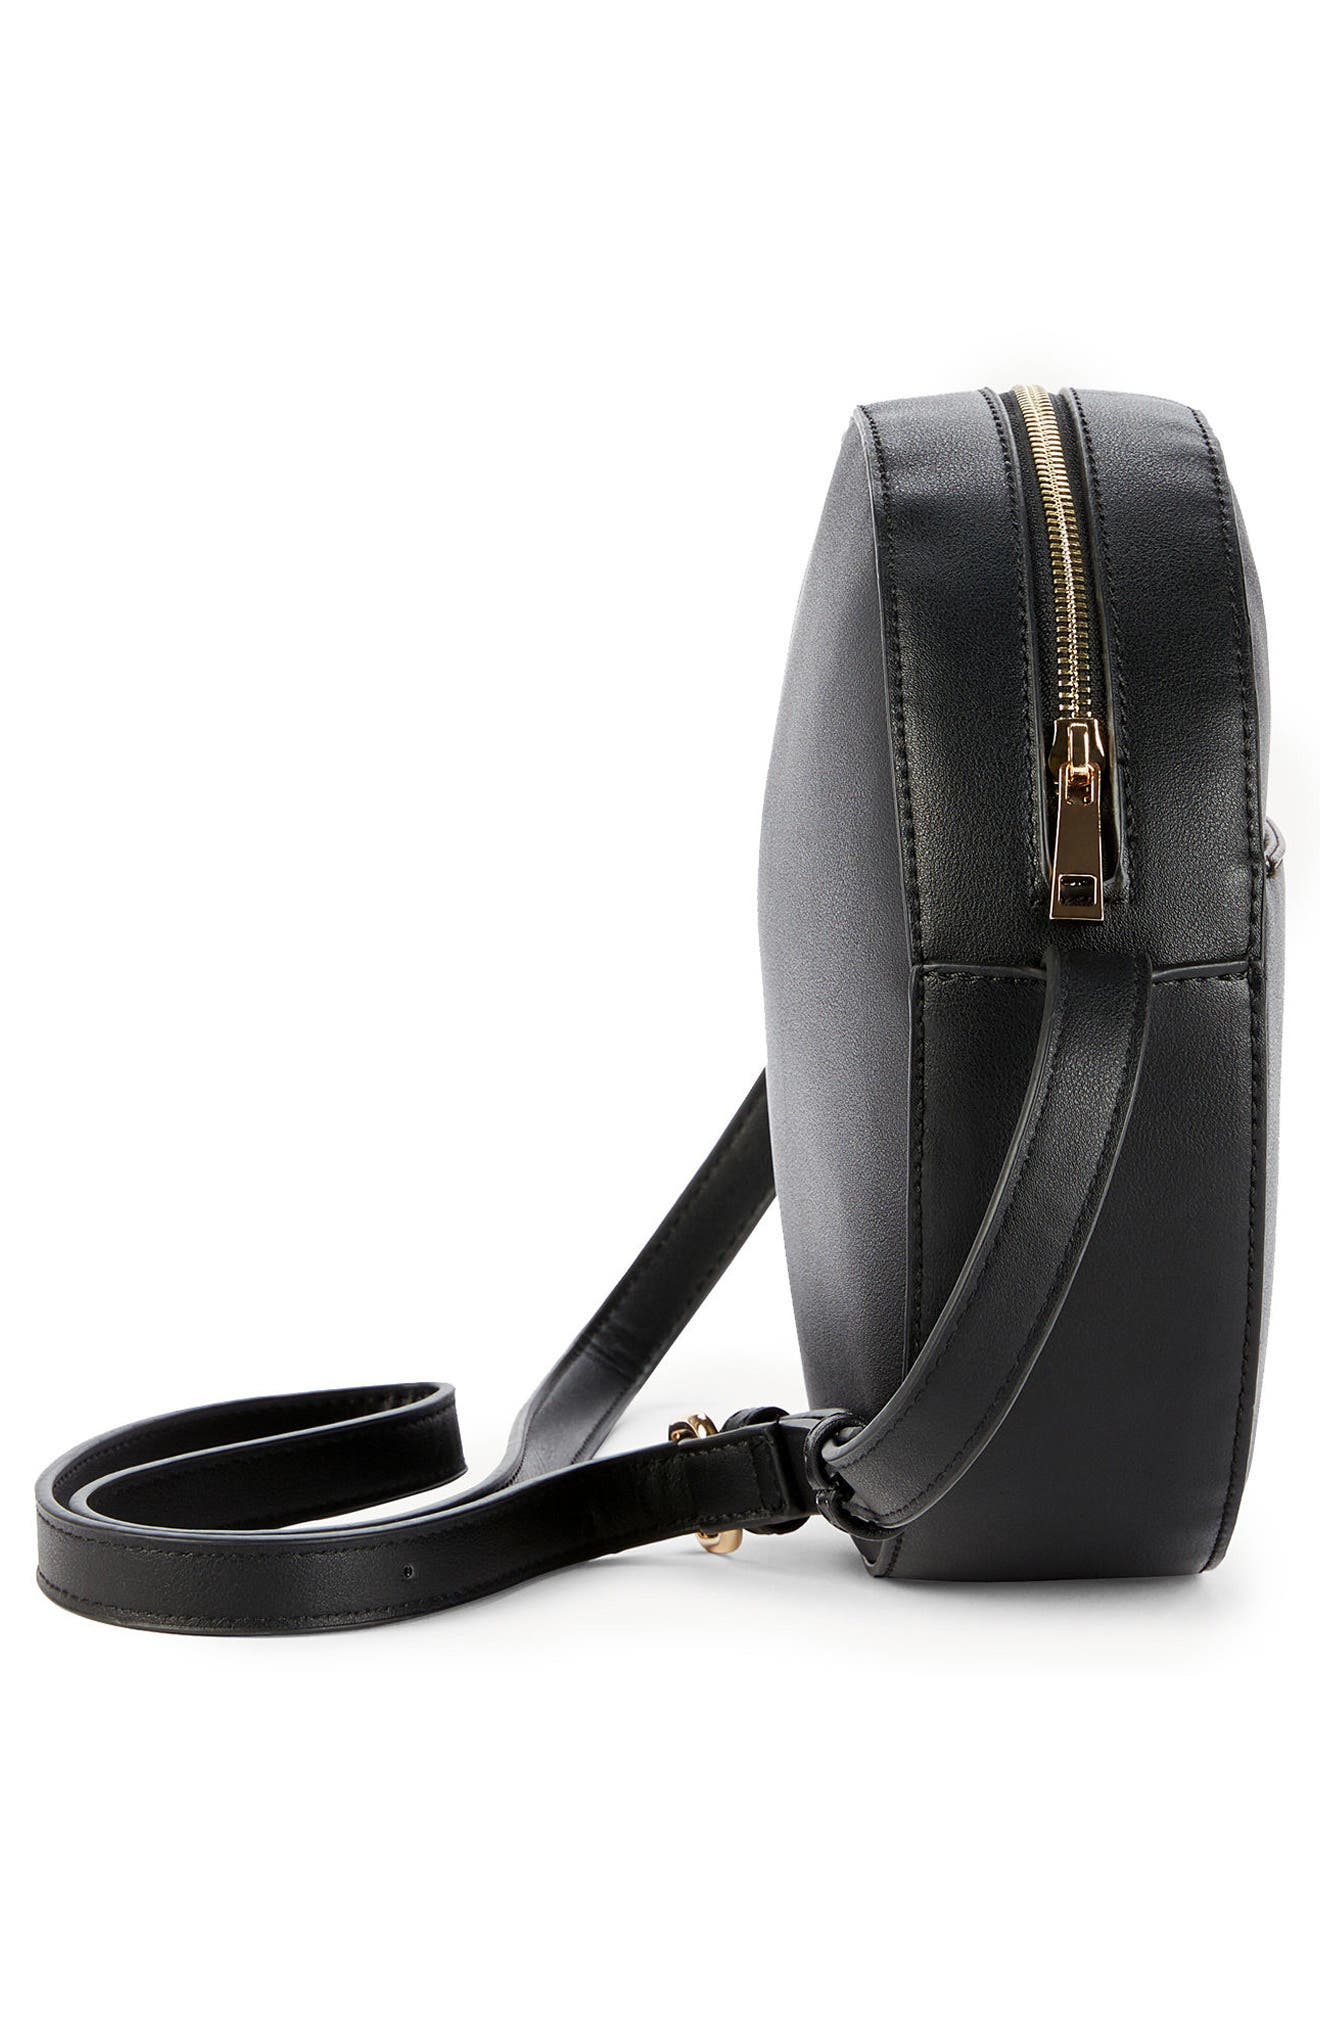 Canteen Faux Leather Crossbody Bag,                             Alternate thumbnail 4, color,                             Black